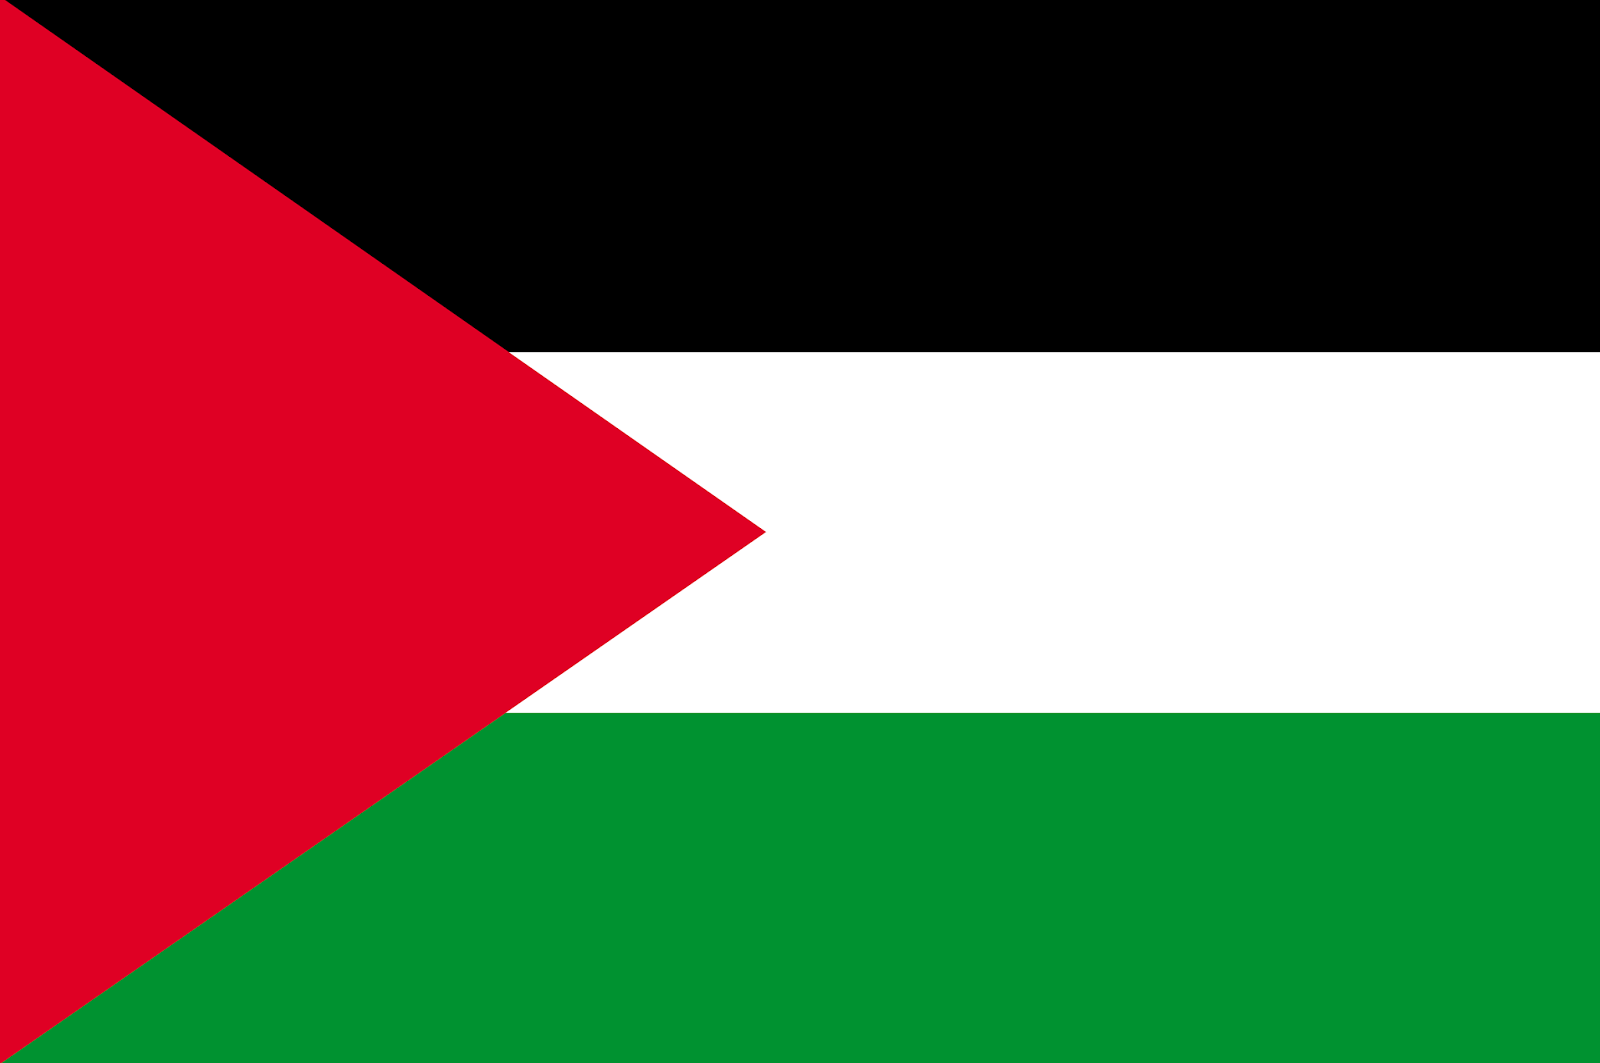 High Resolution Palestine Flag Png Clipart image #38254